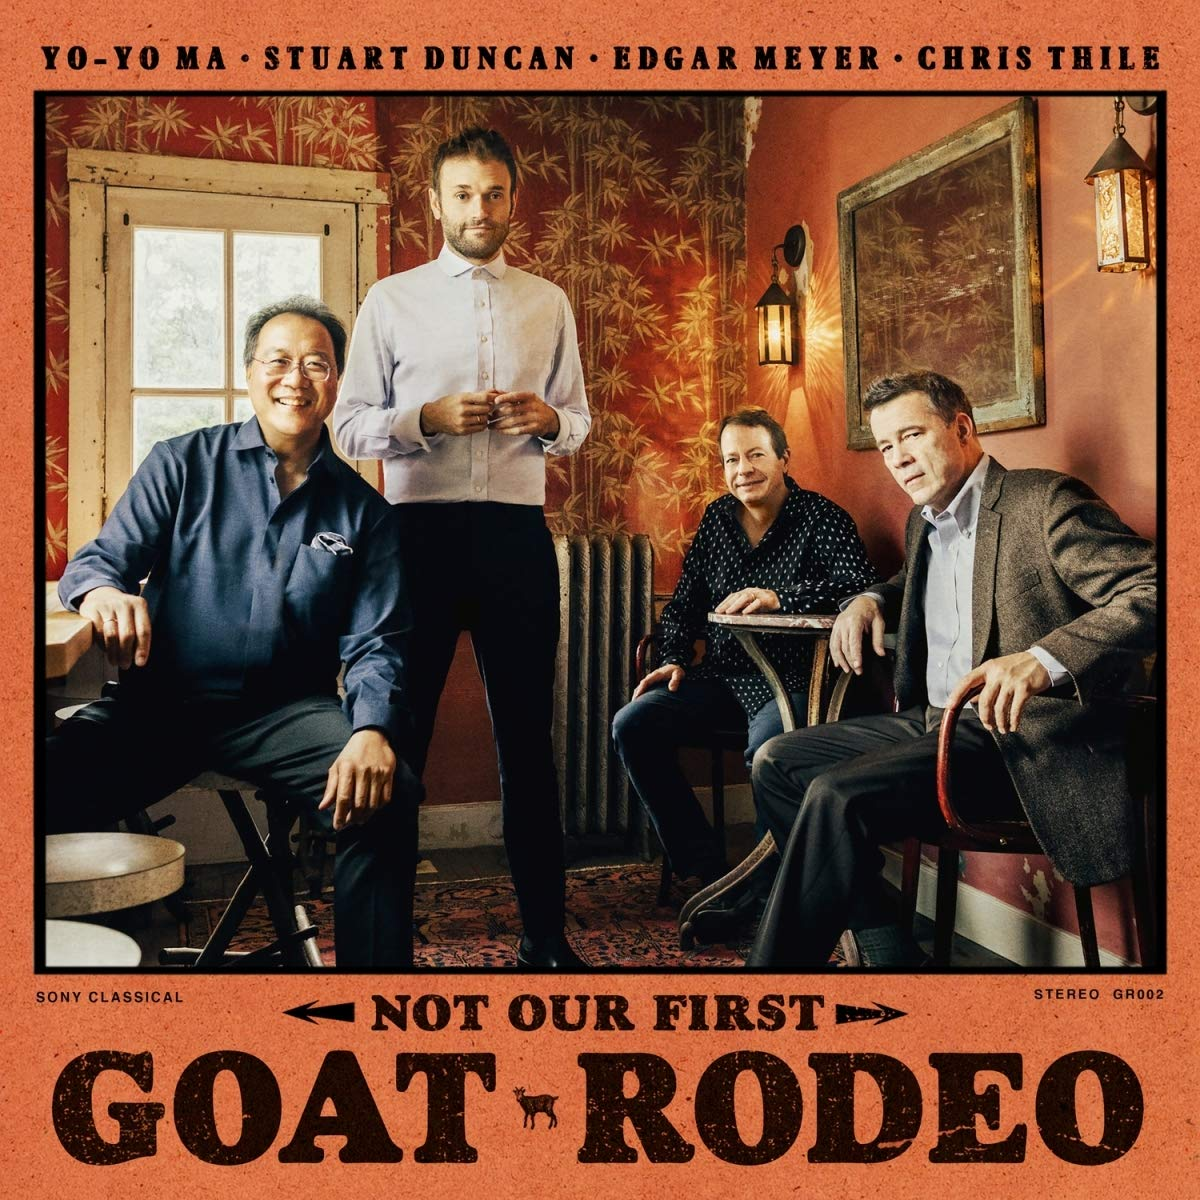 Yo-Yo Ma, Stuart Duncan, Edgar Meyer & Chris Thile - Not Our First Goat Rodeo [CD] - Urban Vinyl | Records, Headphones, and more.